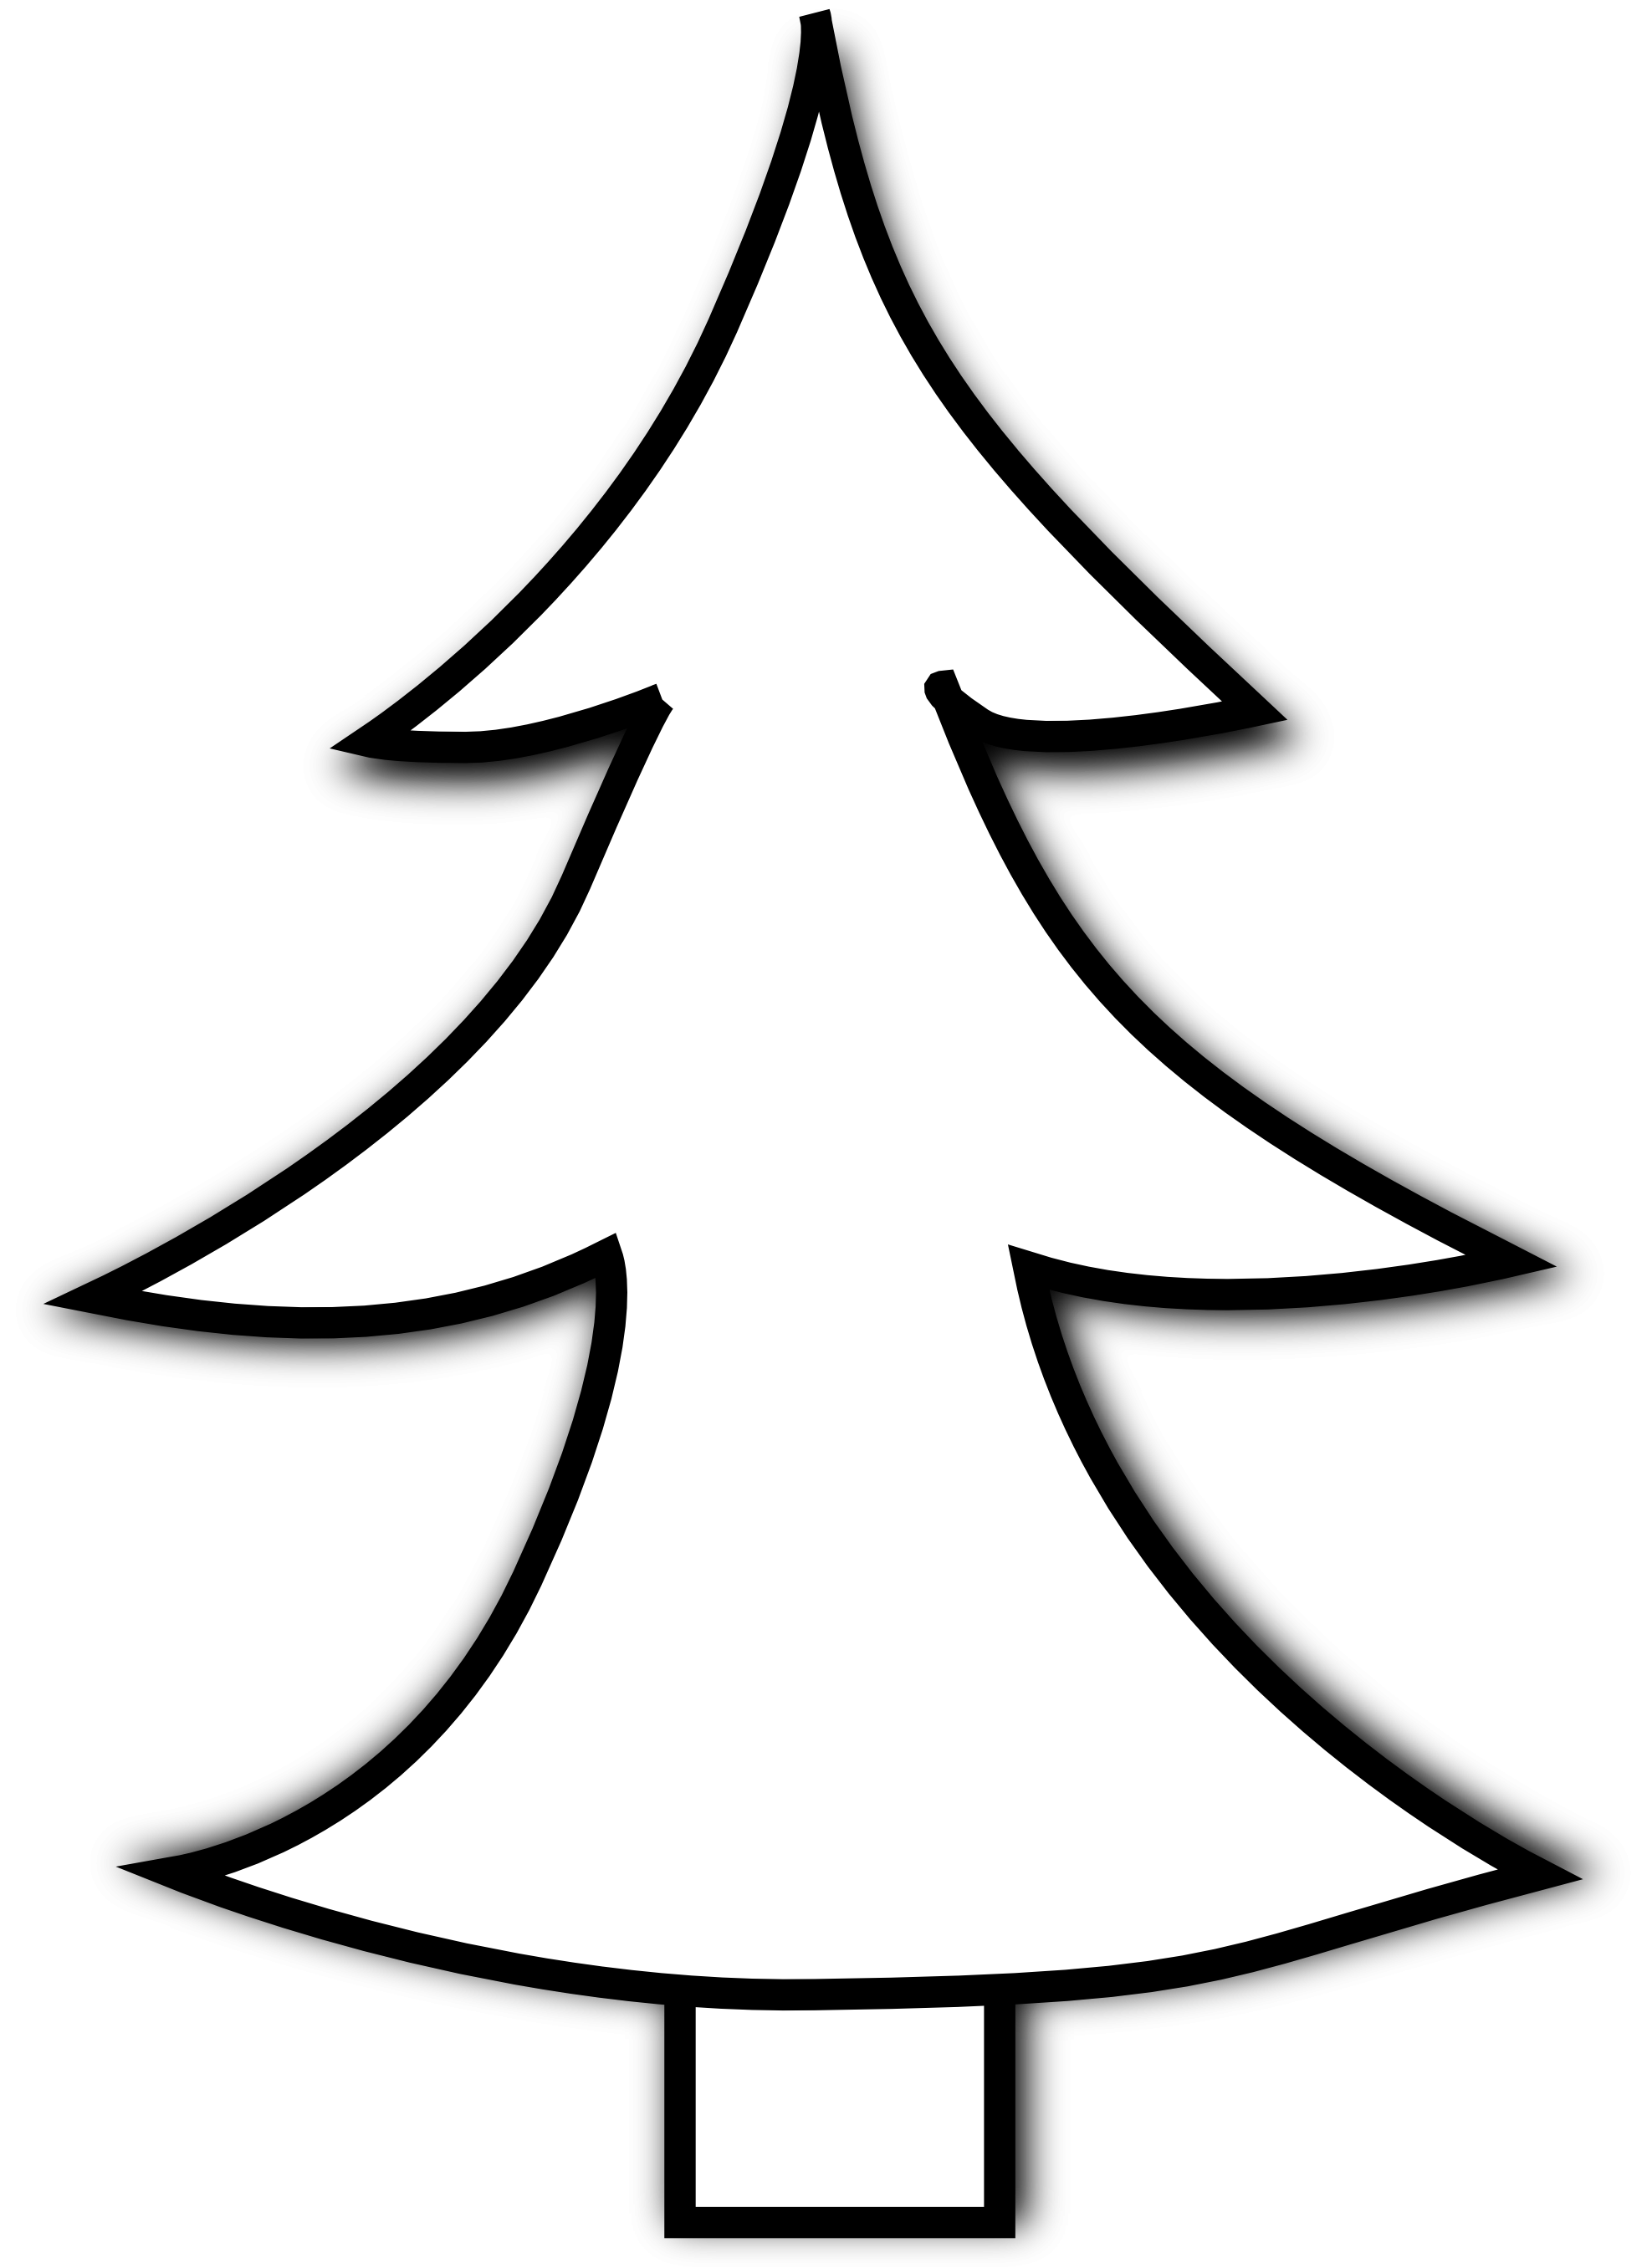 Evergreen tree with snow clipart royalty free stock 28+ Collection of Evergreen Tree Clipart Black And White | High ... royalty free stock